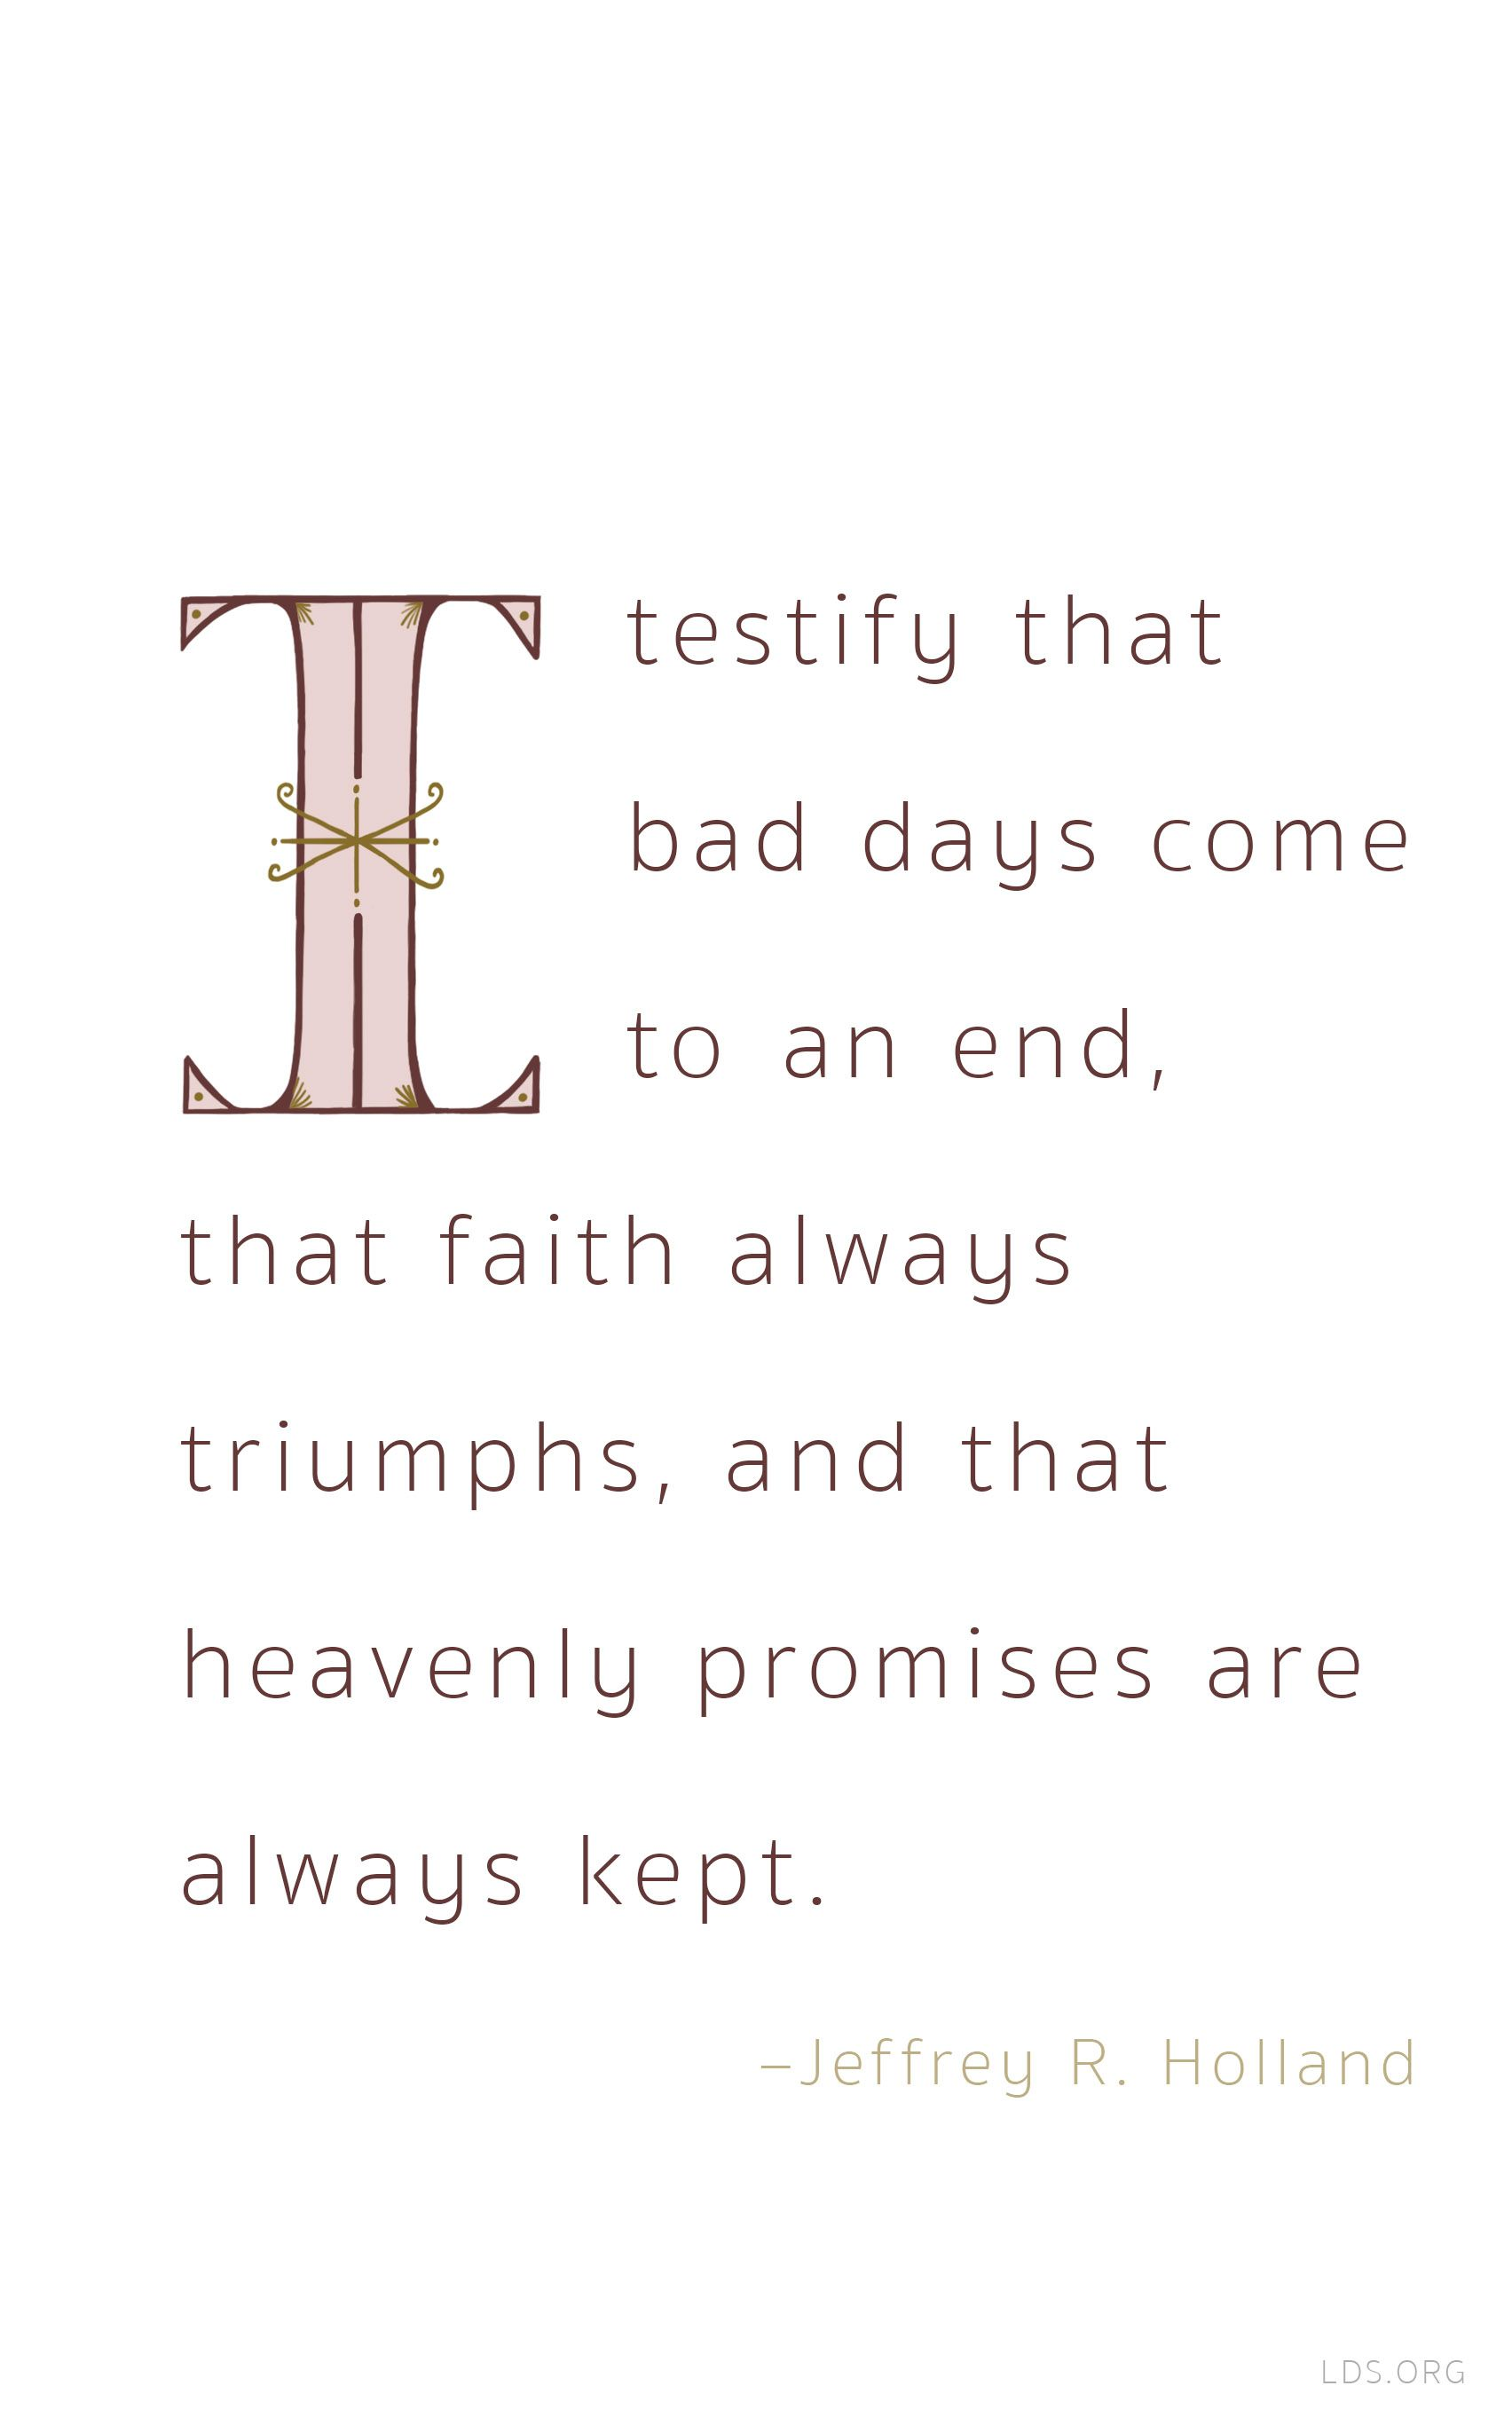 I testify that bad days come to an end, that faith always triumphs ...